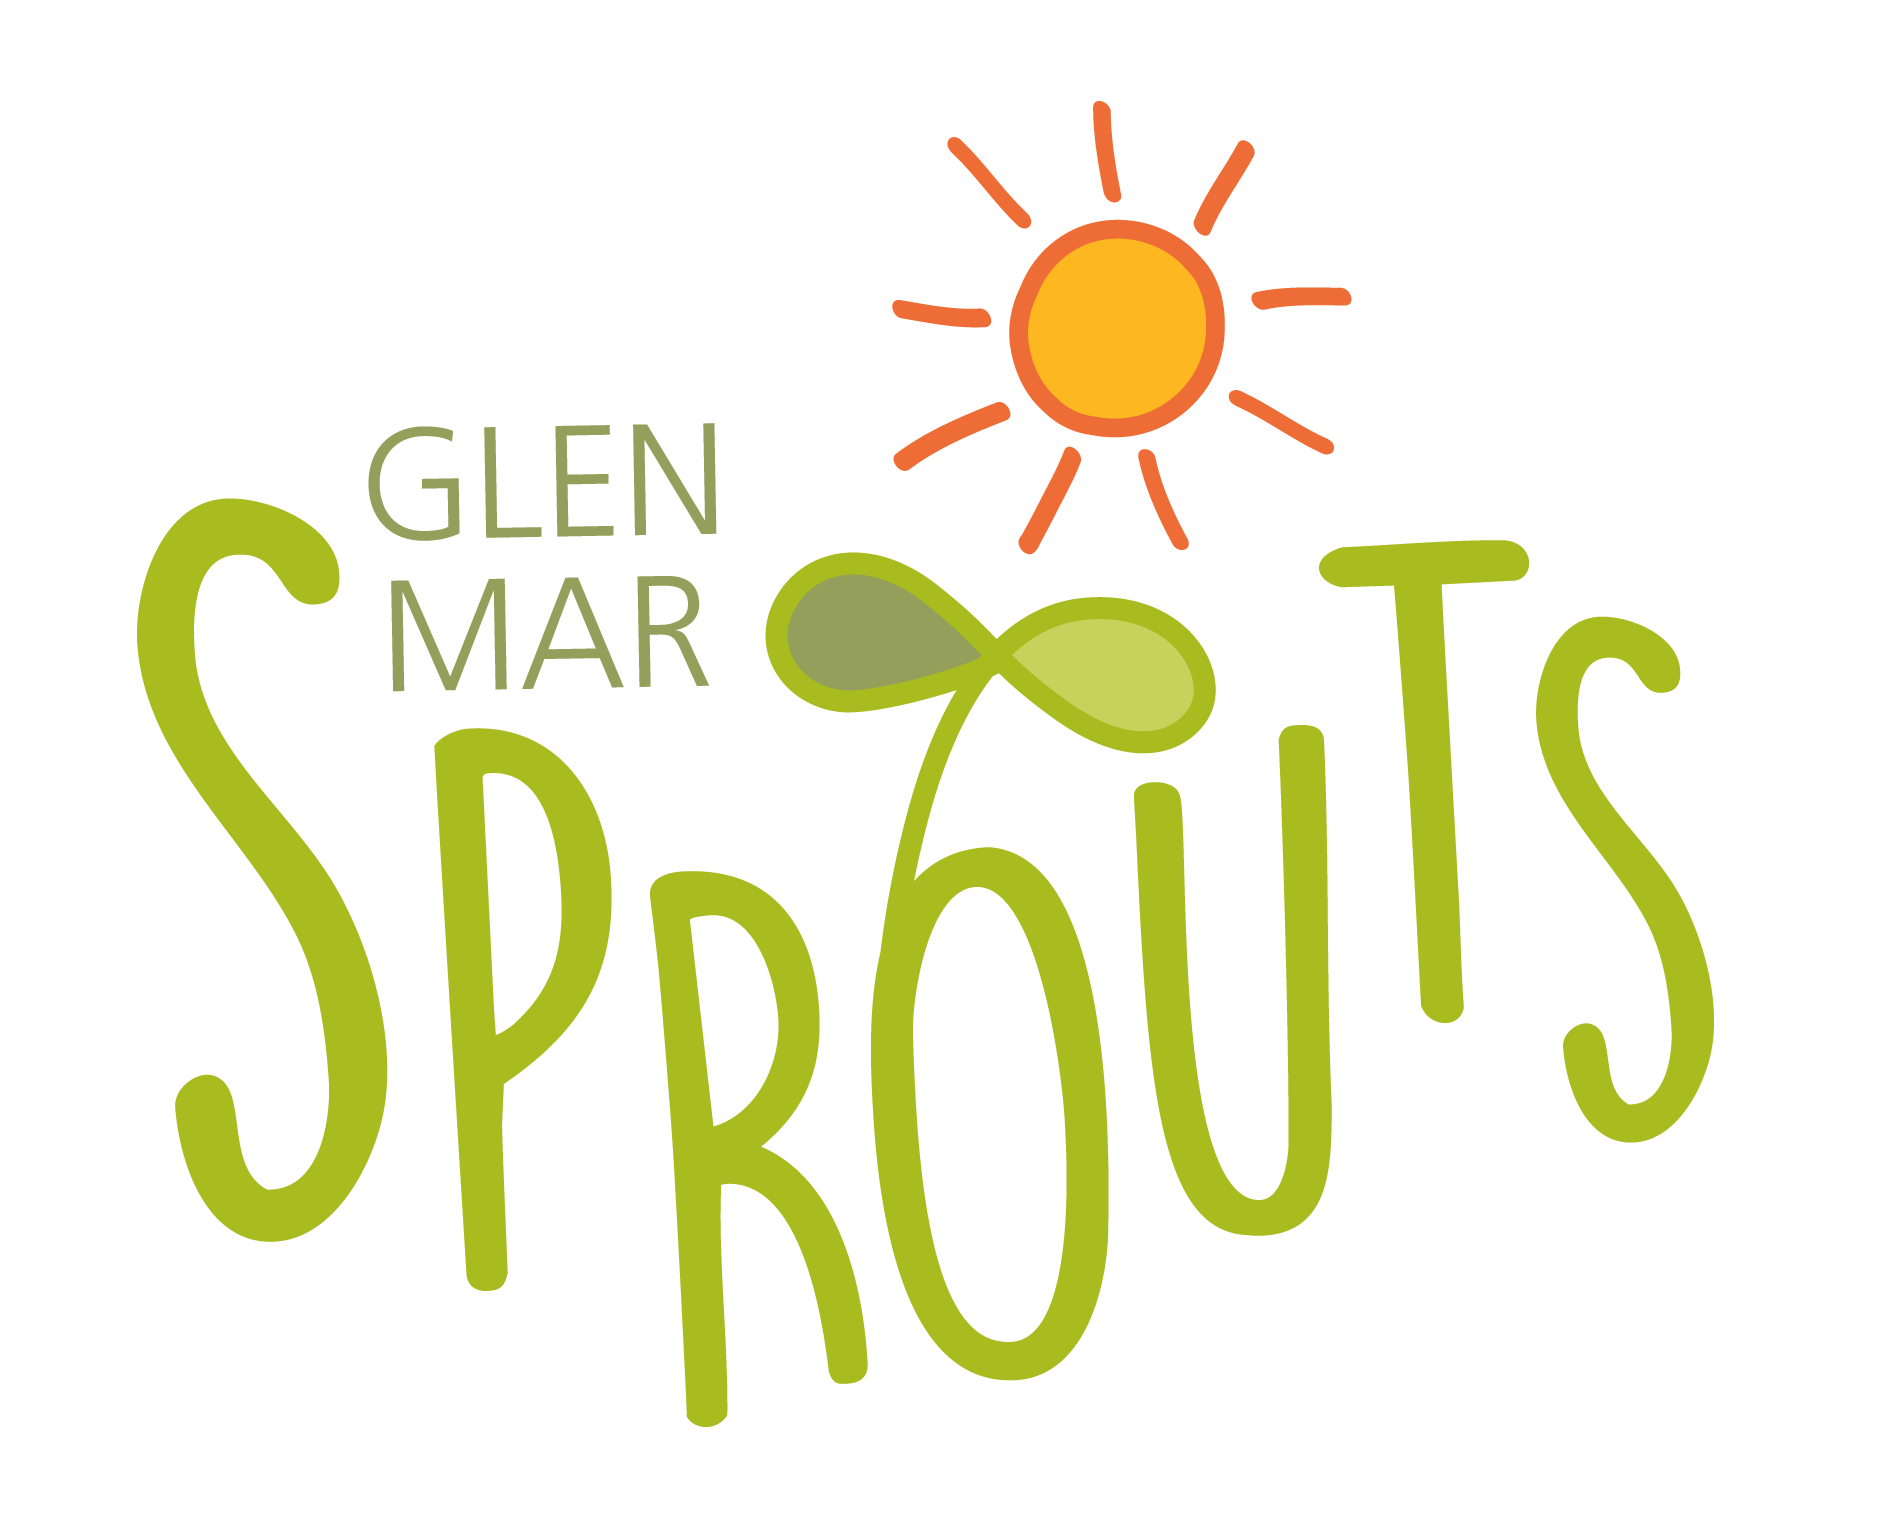 Glen Mar Sprouts Logo